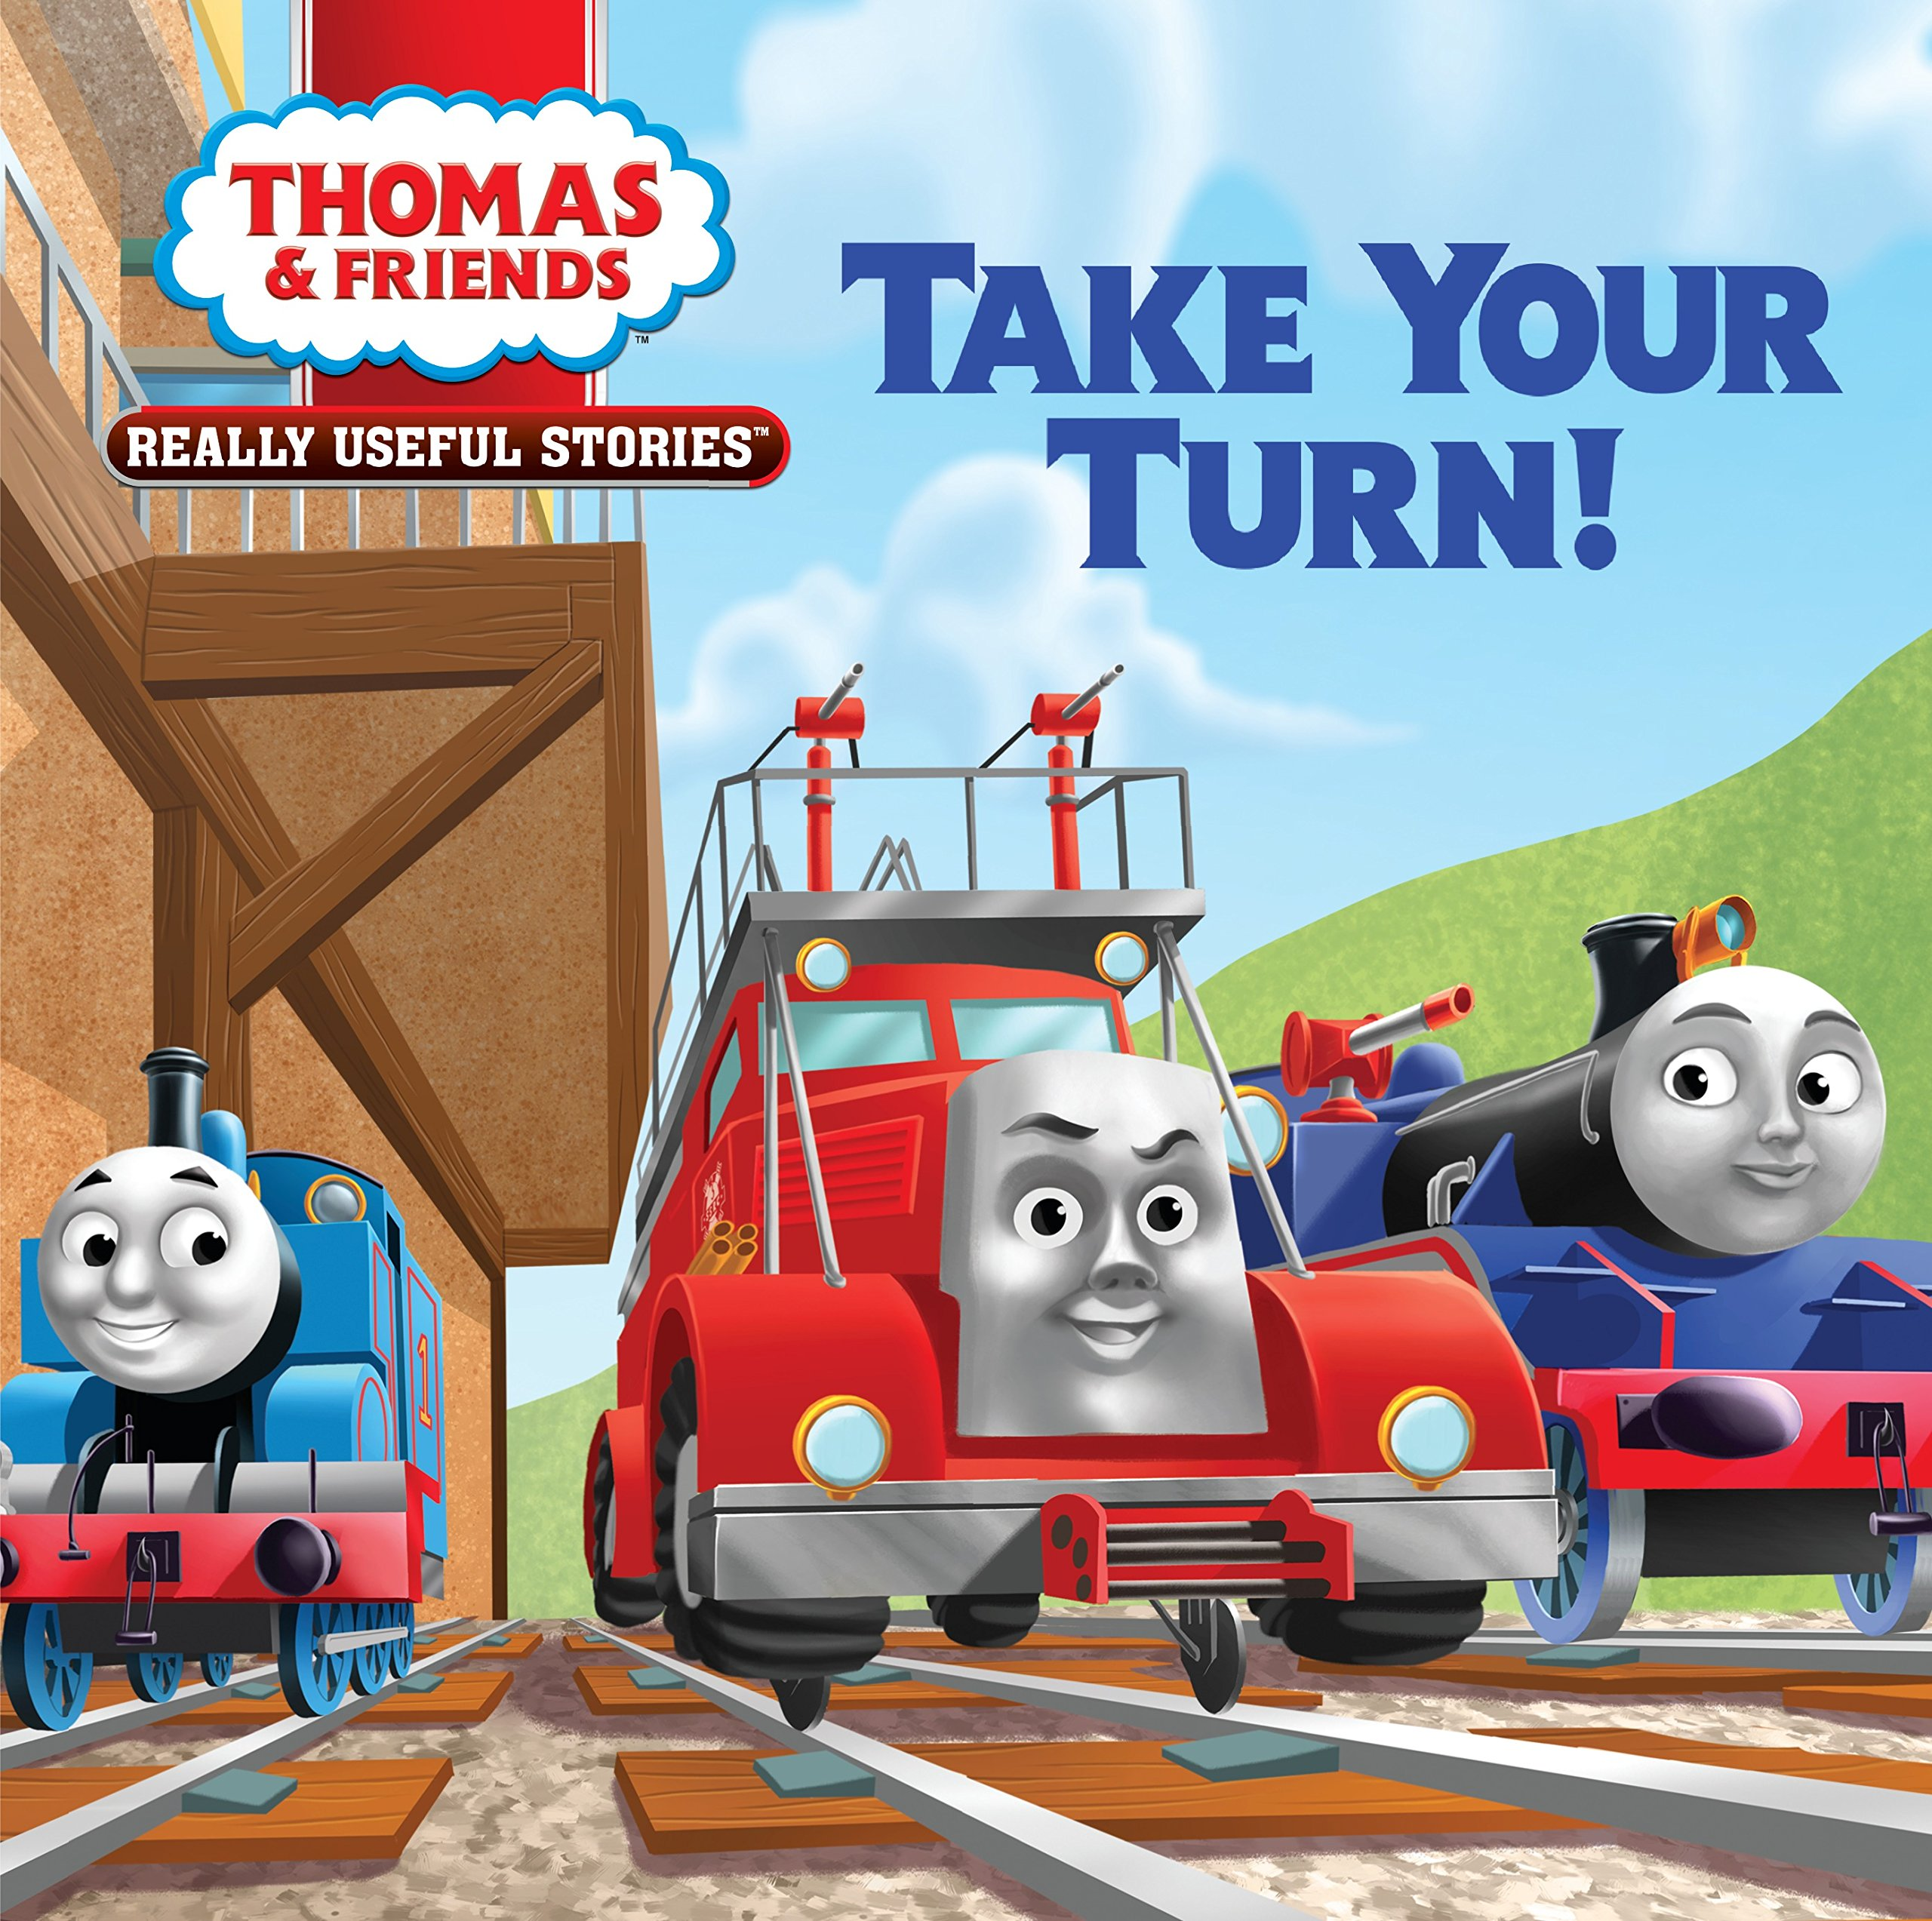 Thomas & Friends Really Useful Stories: Take Your Turn! (Thomas & Friends) (Thomas & Friends Really Useful Stories: Little Golden Books)